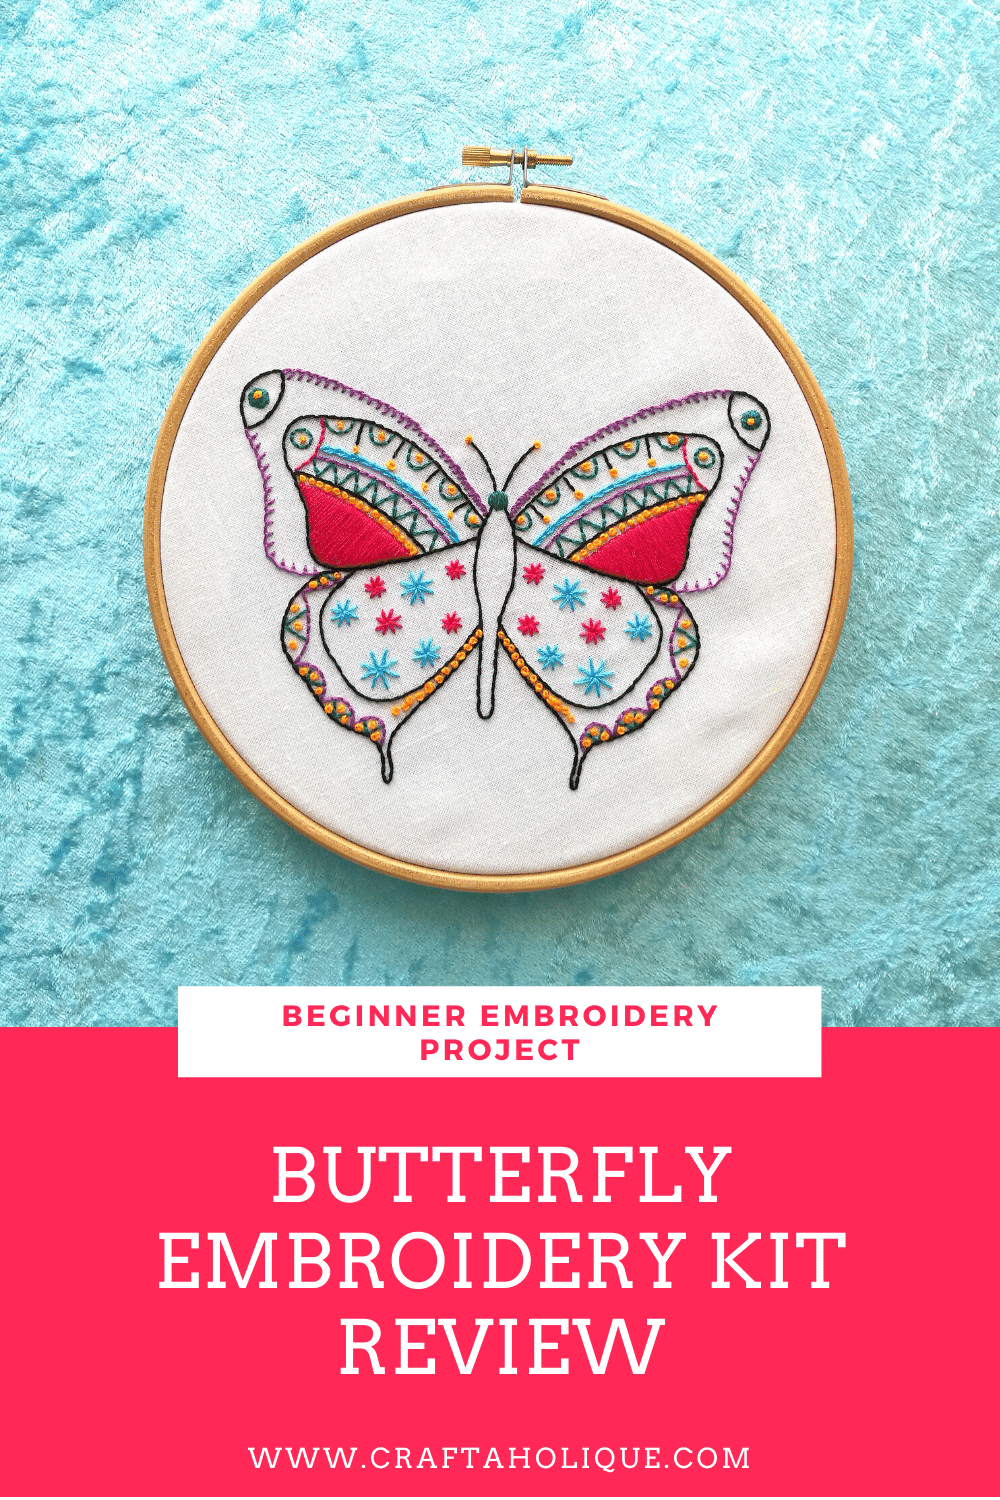 Beginner embroidery butterfly kit from Hawthorn Handmade! This article explains what I think of this kit, what's included in the kit contents, what the instructions are like and how to buy the kit itself.